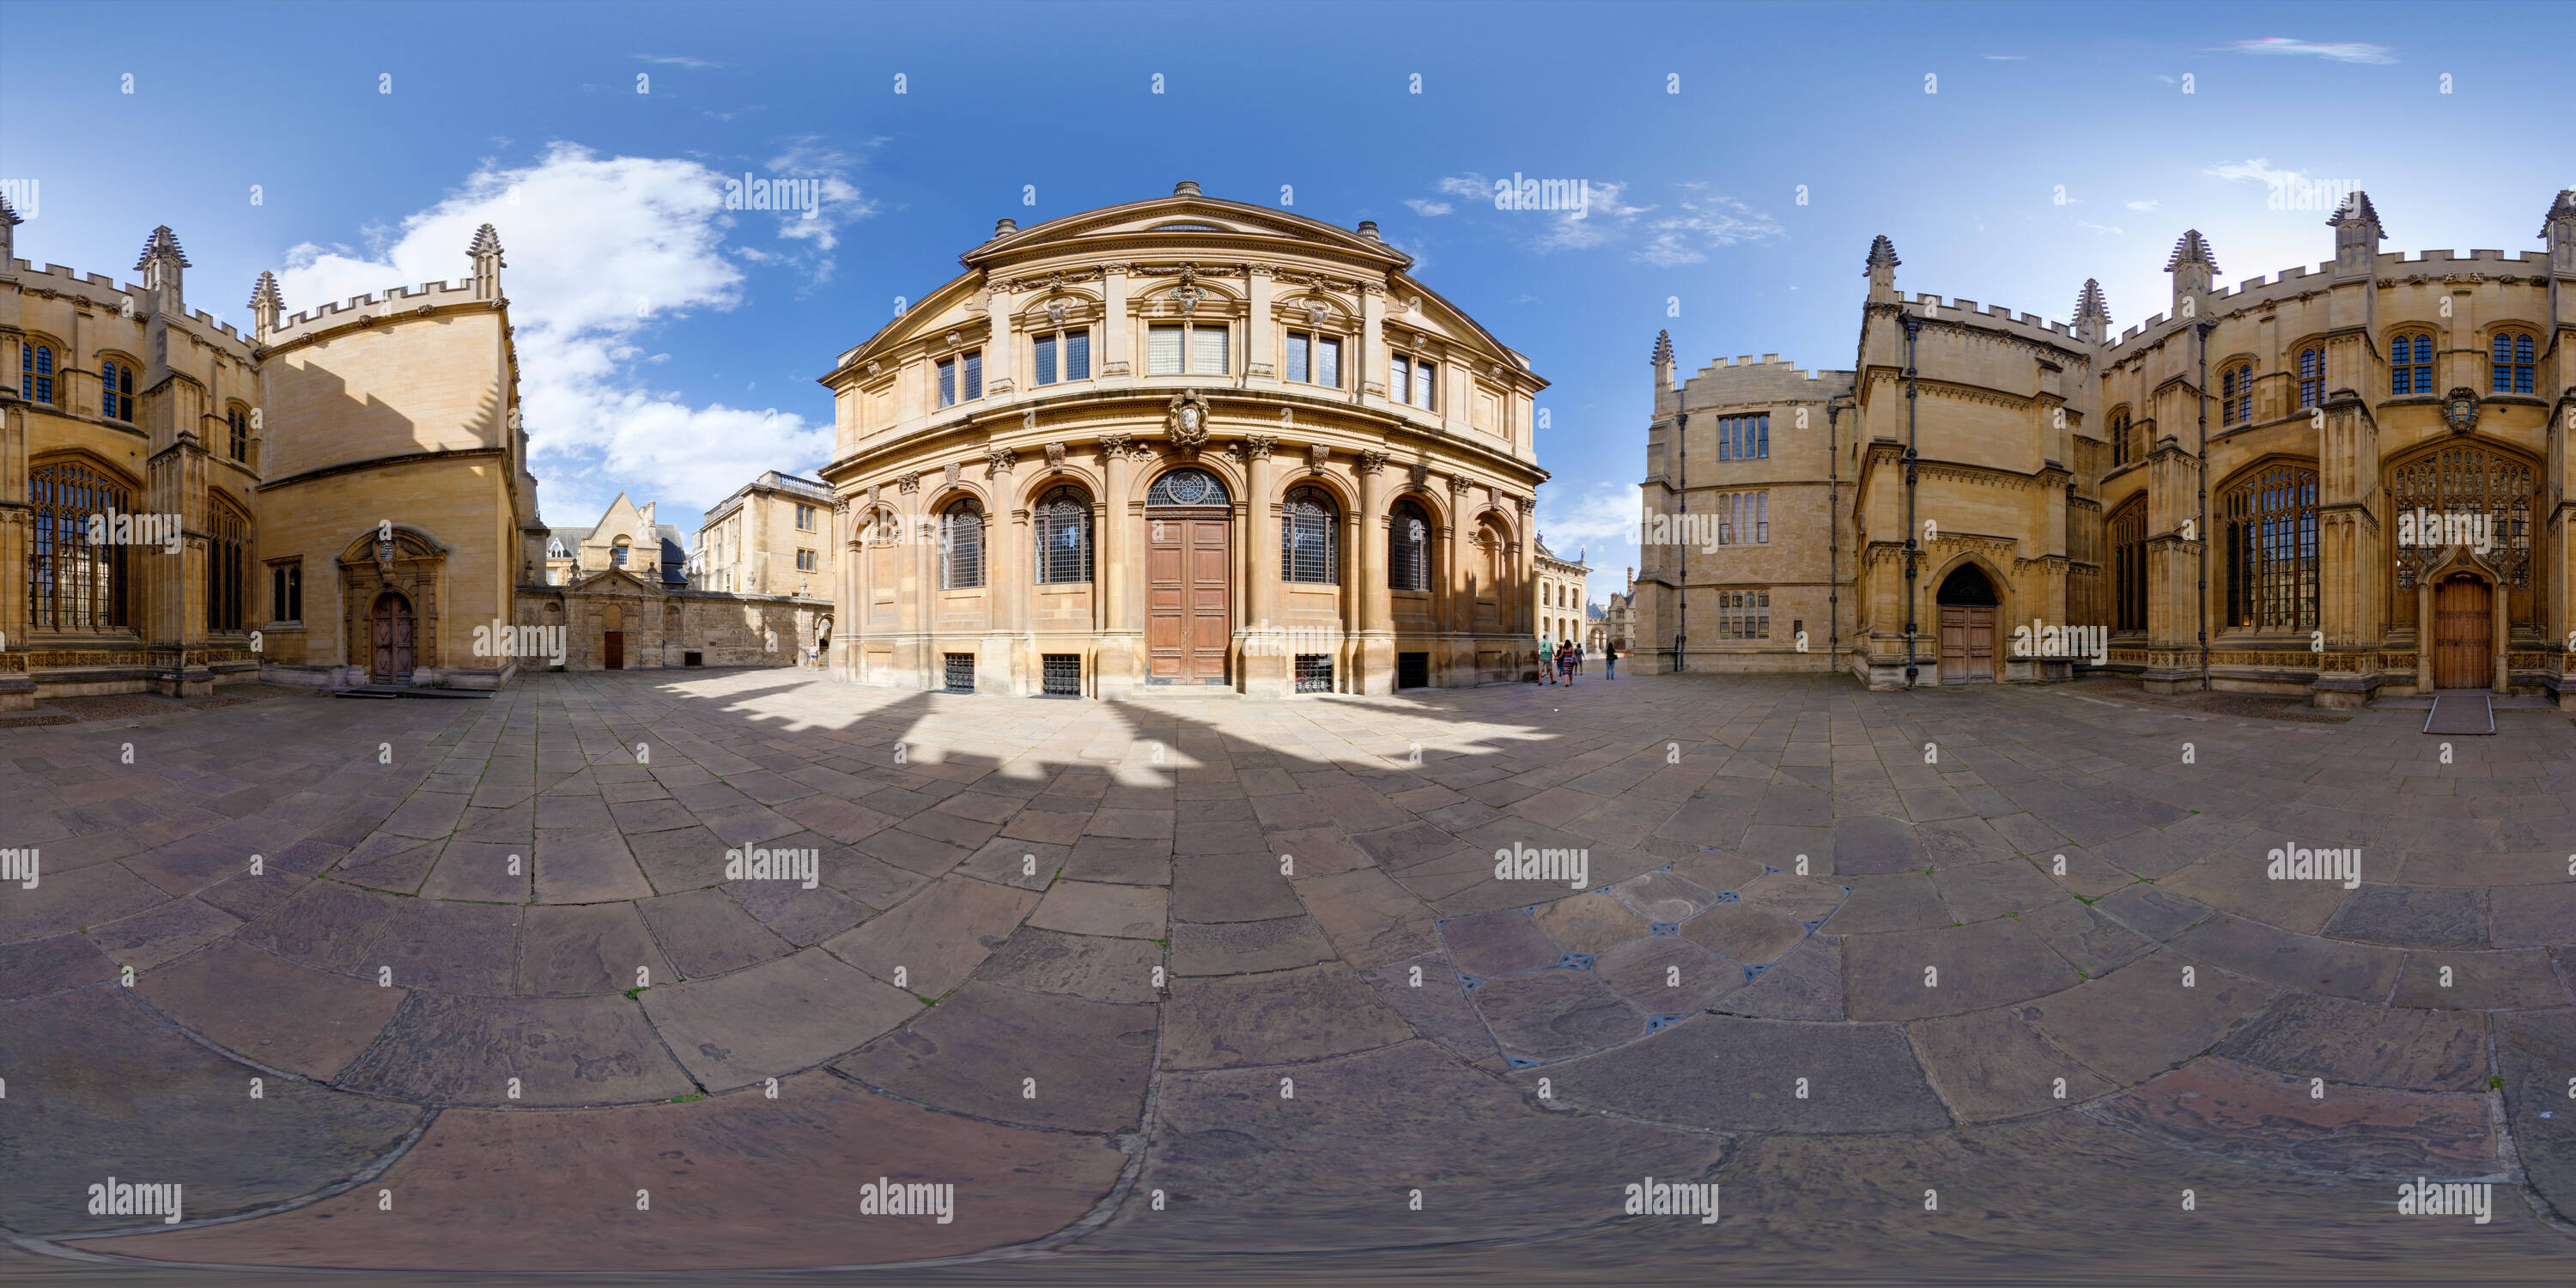 360 degree panoramic view of Sheldonian Theatre, Oxford University